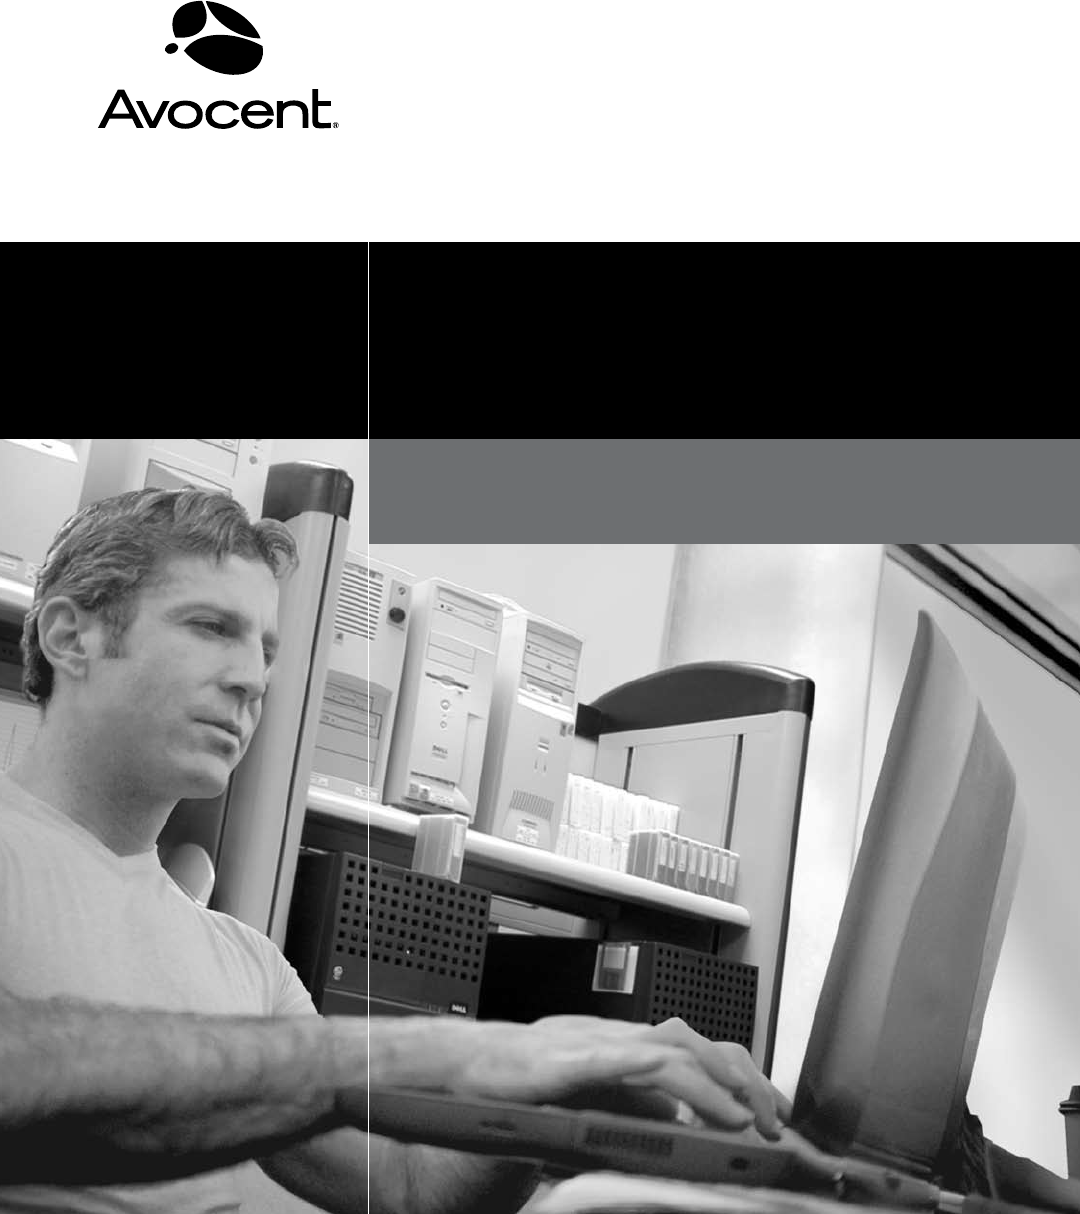 avocent switch 1415 user guide manualsonline com rh office manualsonline com Instruction Manual Instruction Manual Example